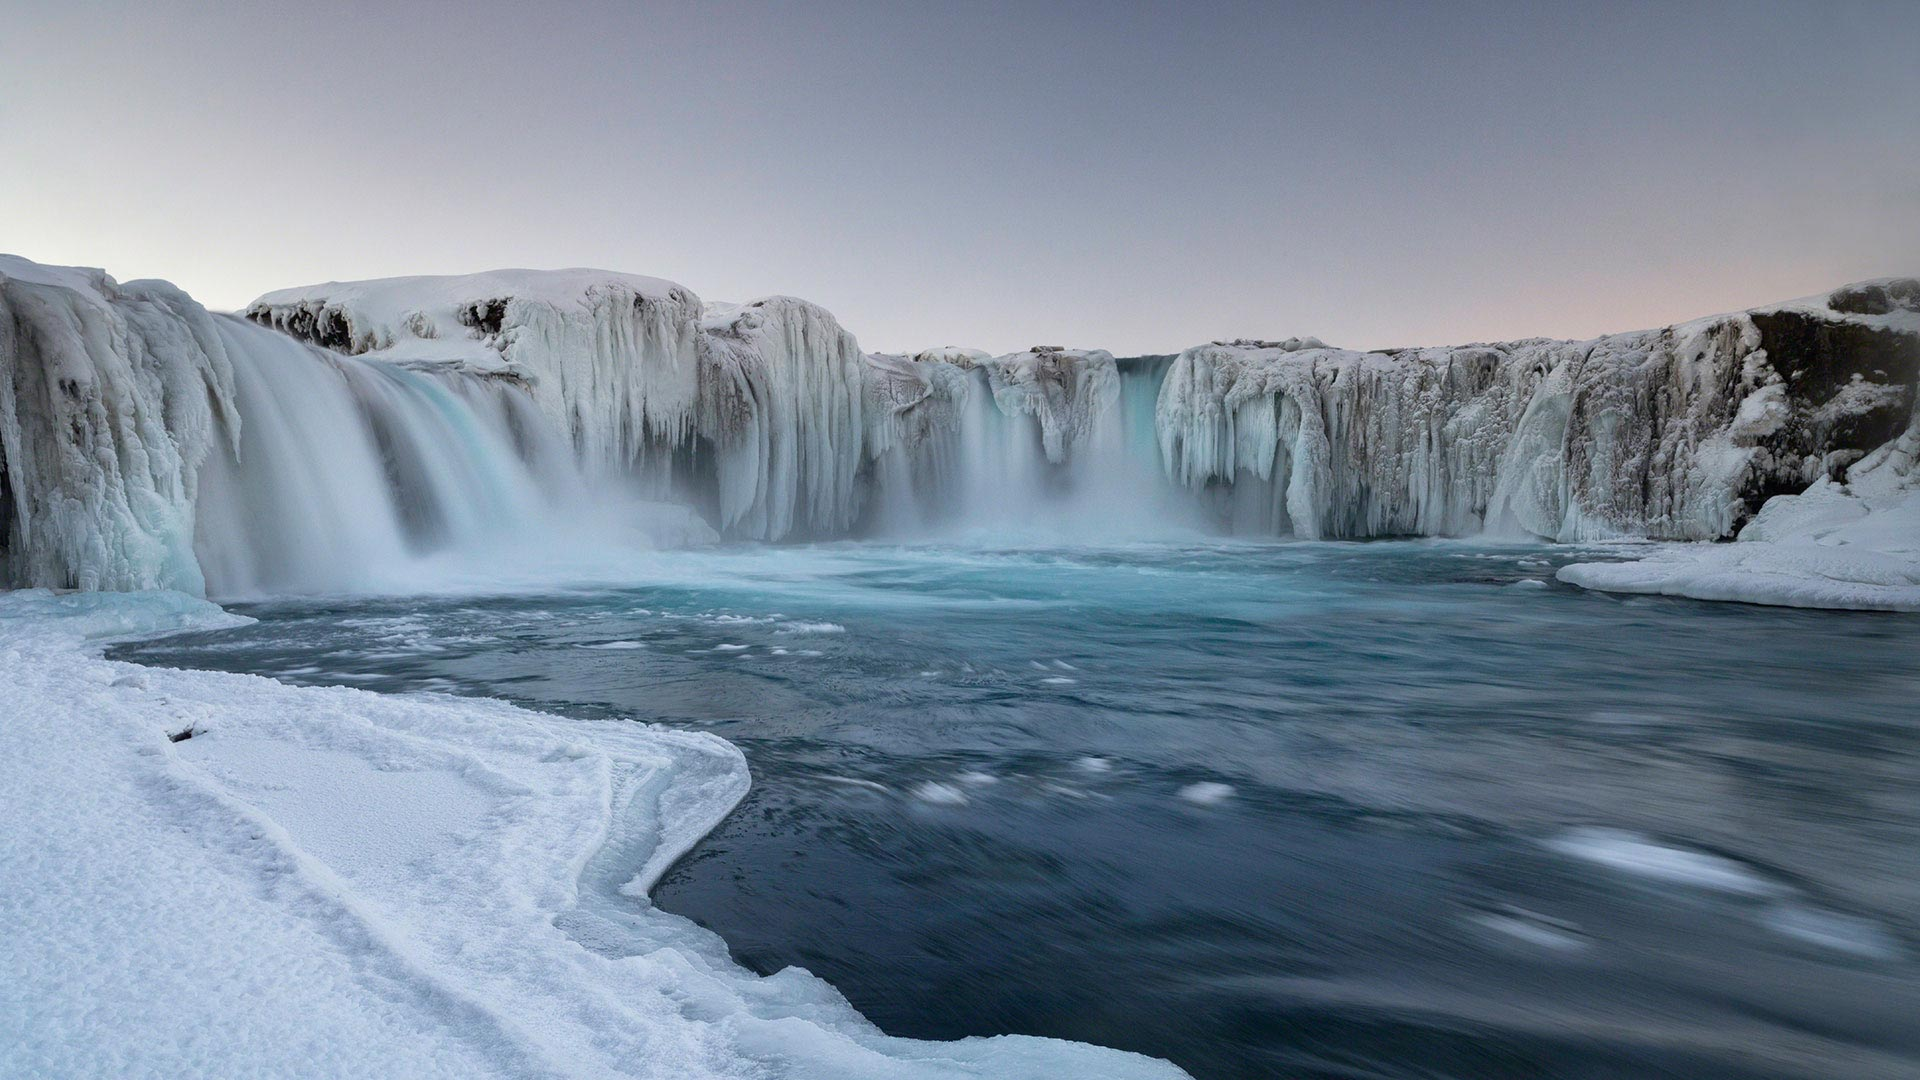 wallpaper godafoss iceland free - photo #21